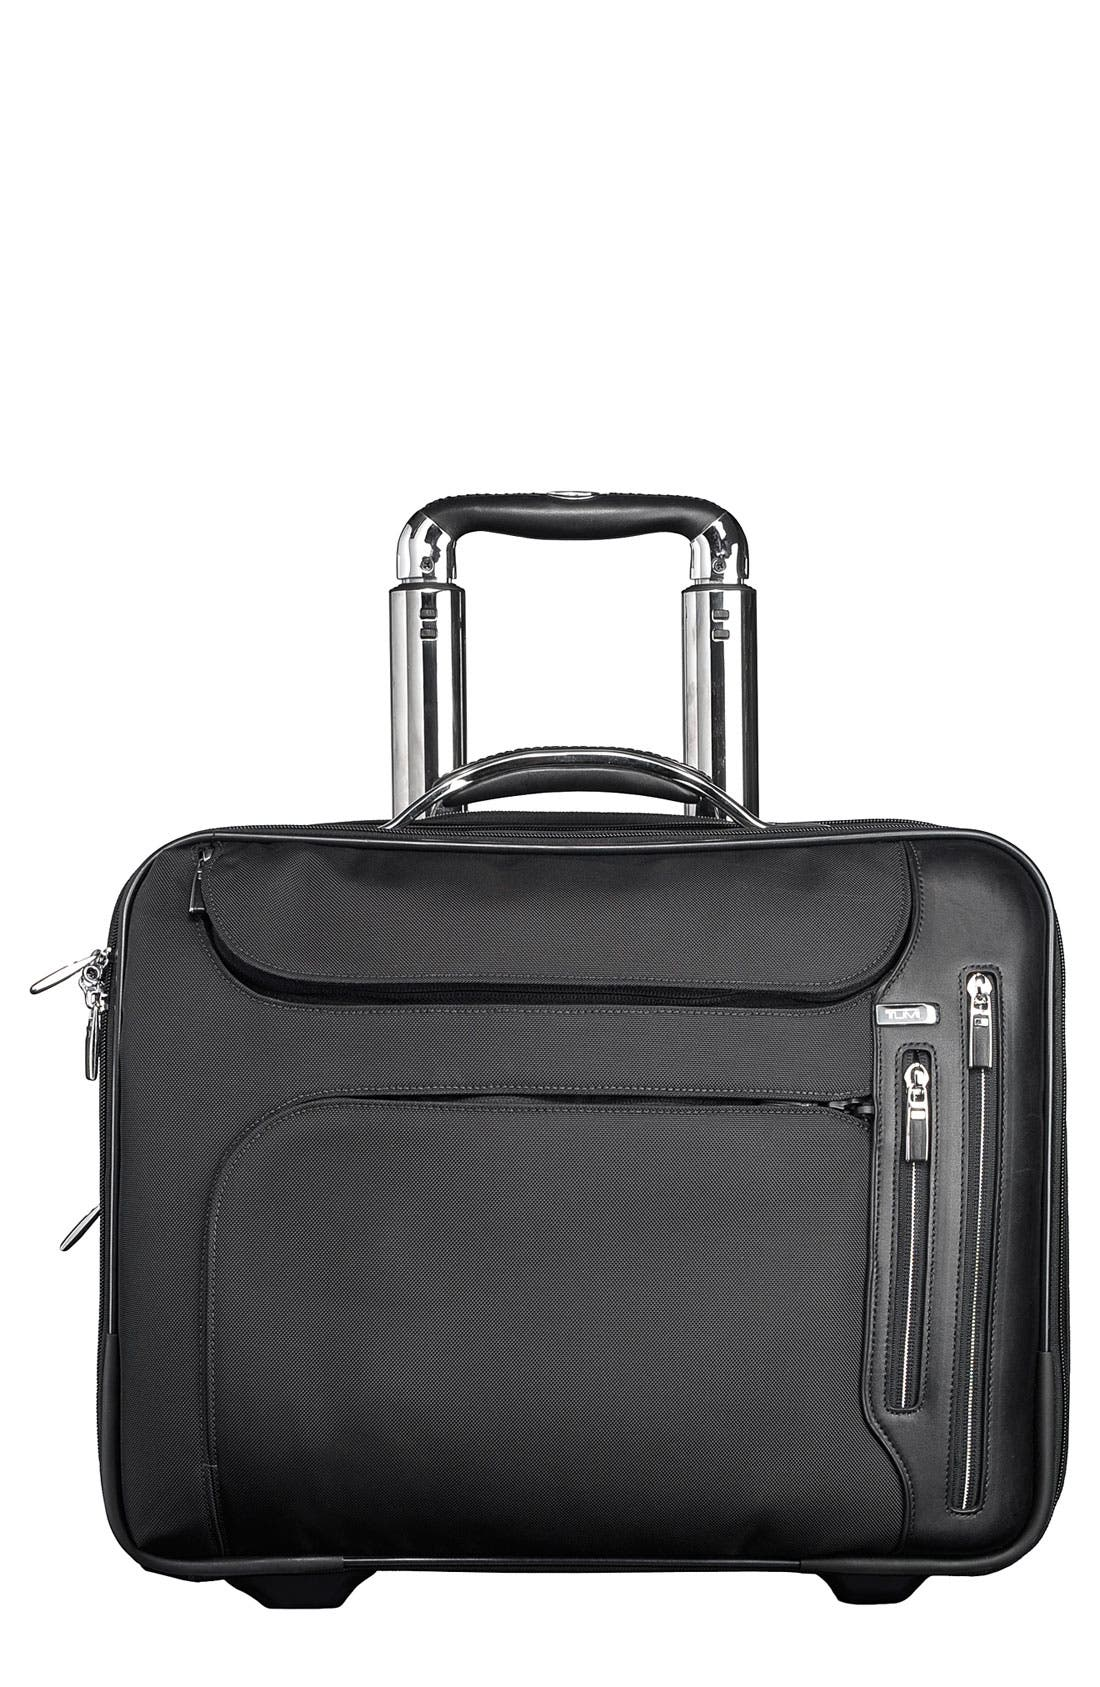 'Arrive - LaGuardia' Wheeled Briefcase with Laptop Insert,                             Main thumbnail 1, color,                             Black